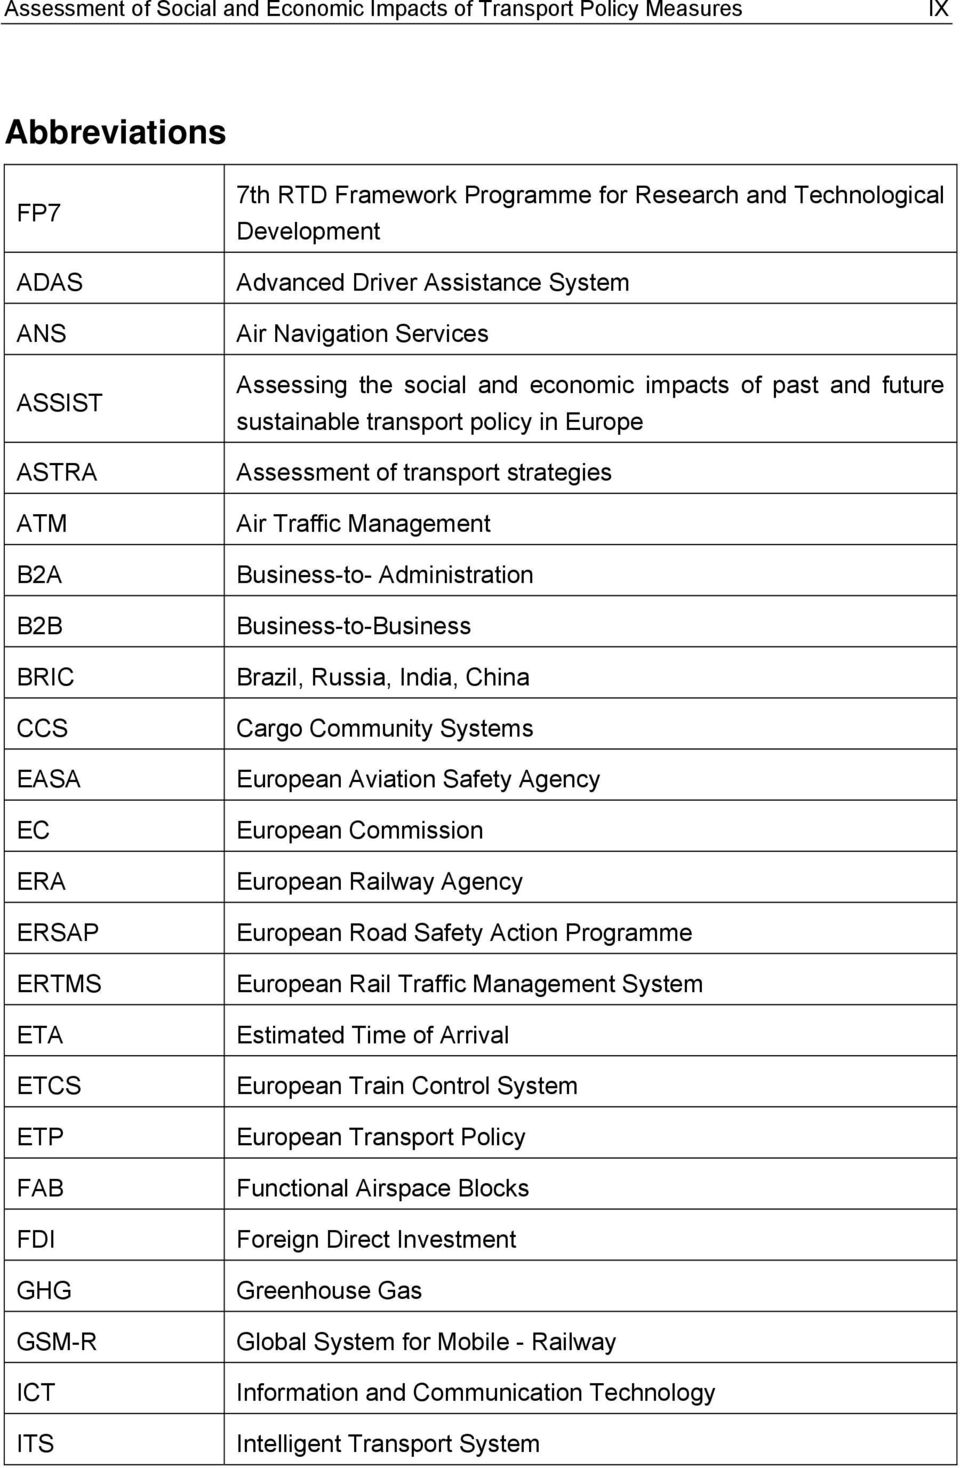 Europe Assessment of strategies Traffic Management Business-to- Administration Business-to-Business Brazil, Russia, India, China Cargo Community Systems European Aviation Safety Agency European